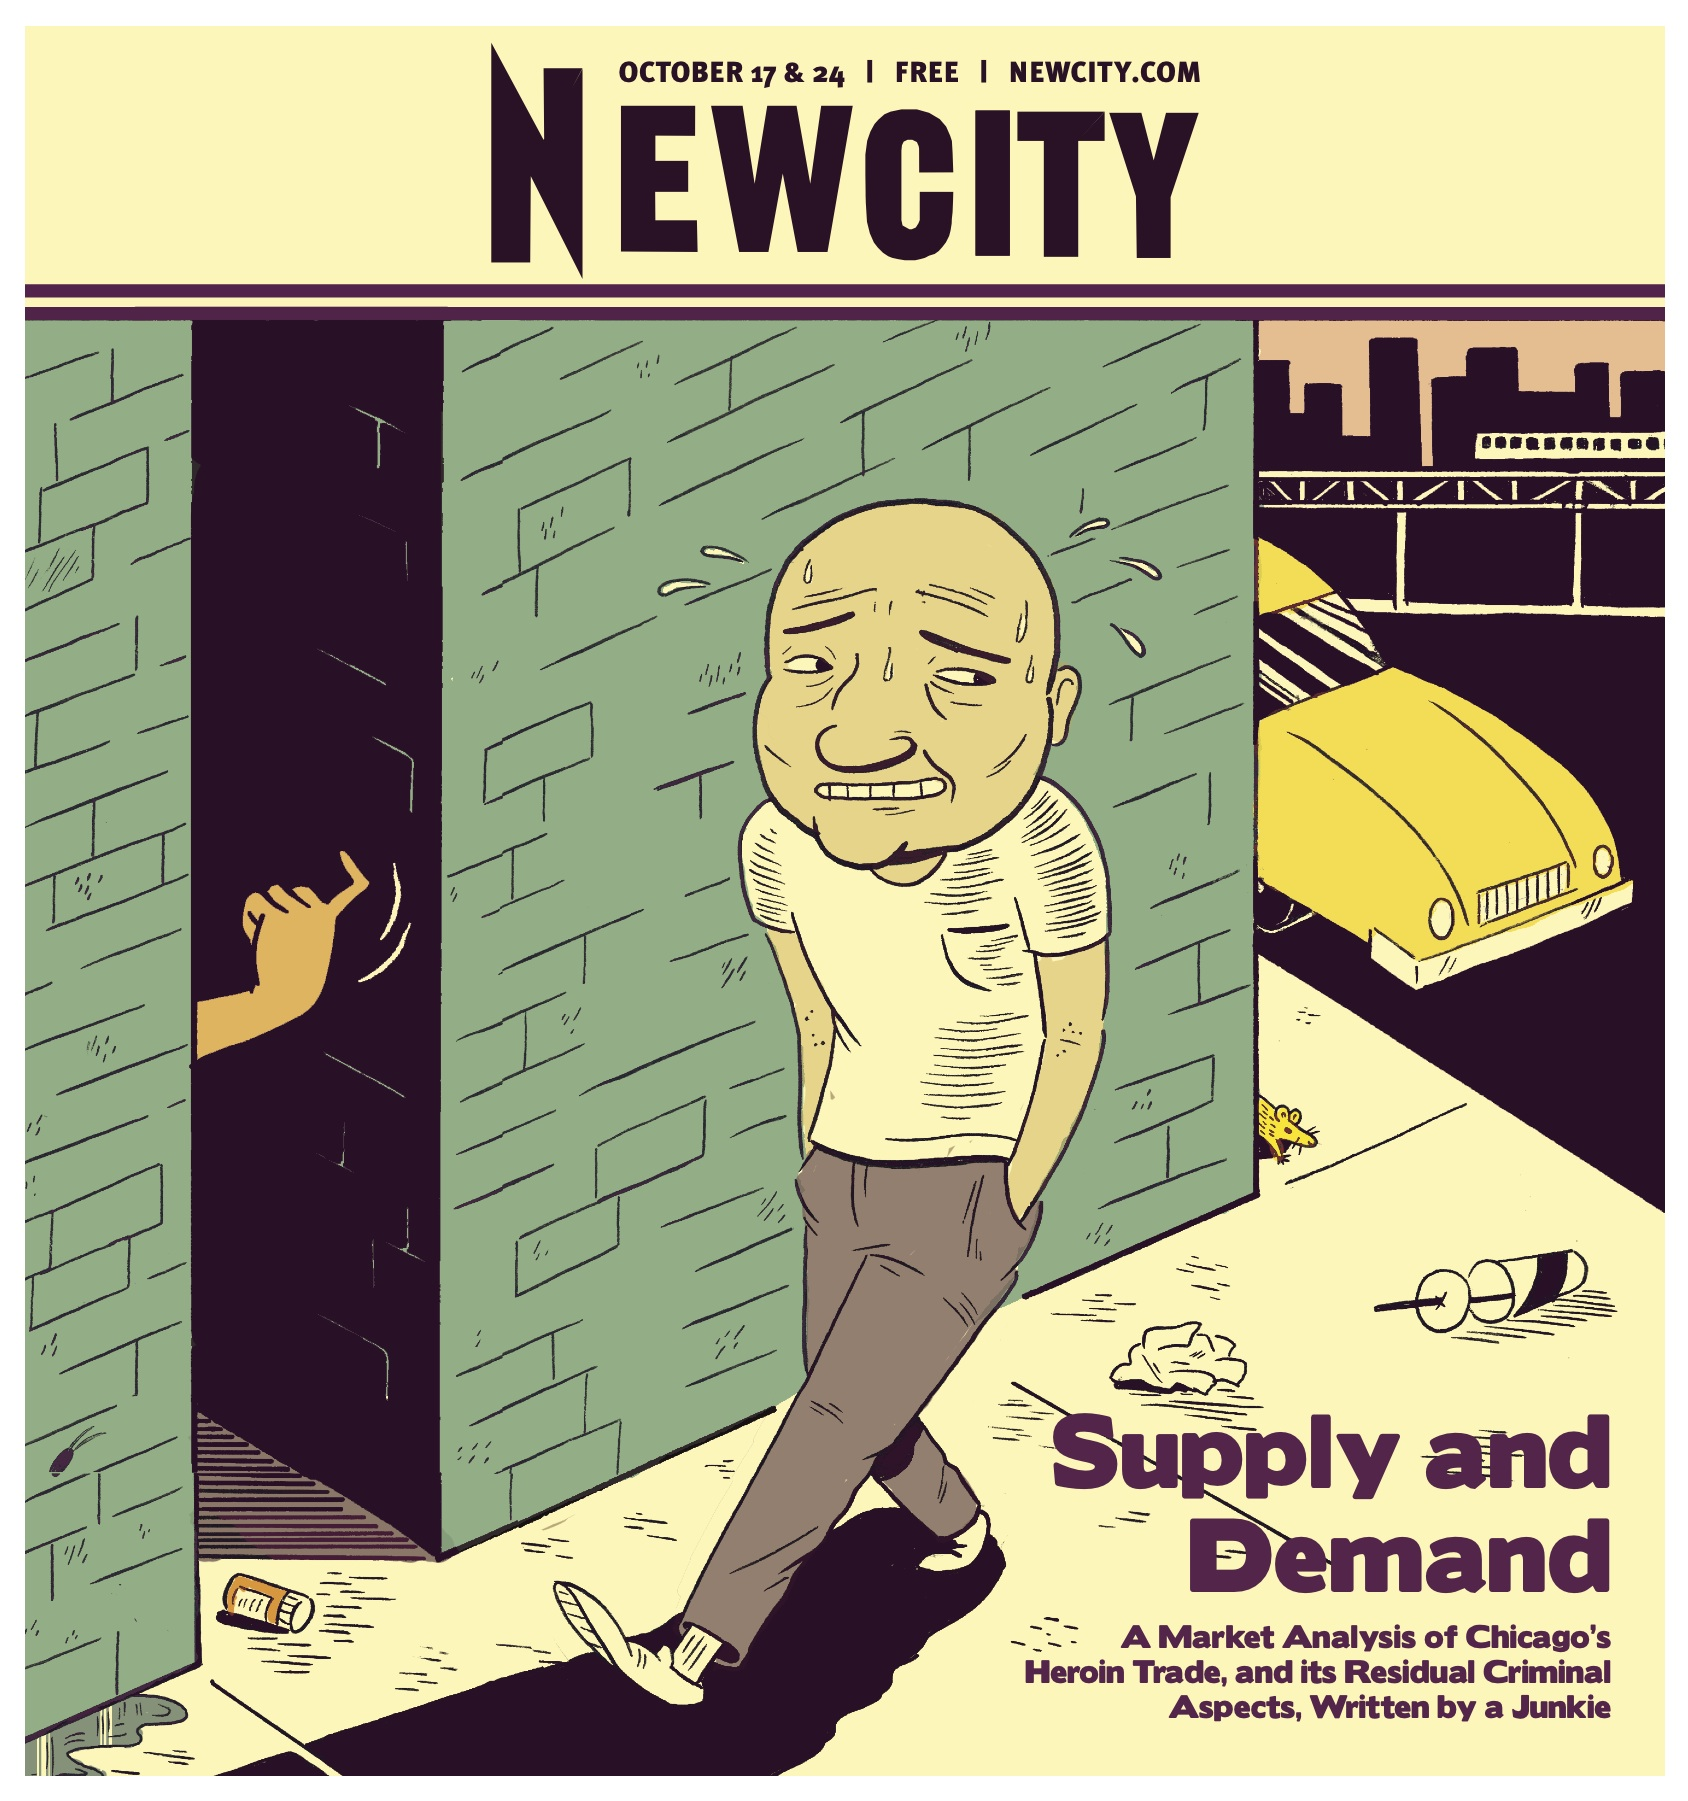 Supply and Demand: A Market Analysis of Chicago's Heroin Trade